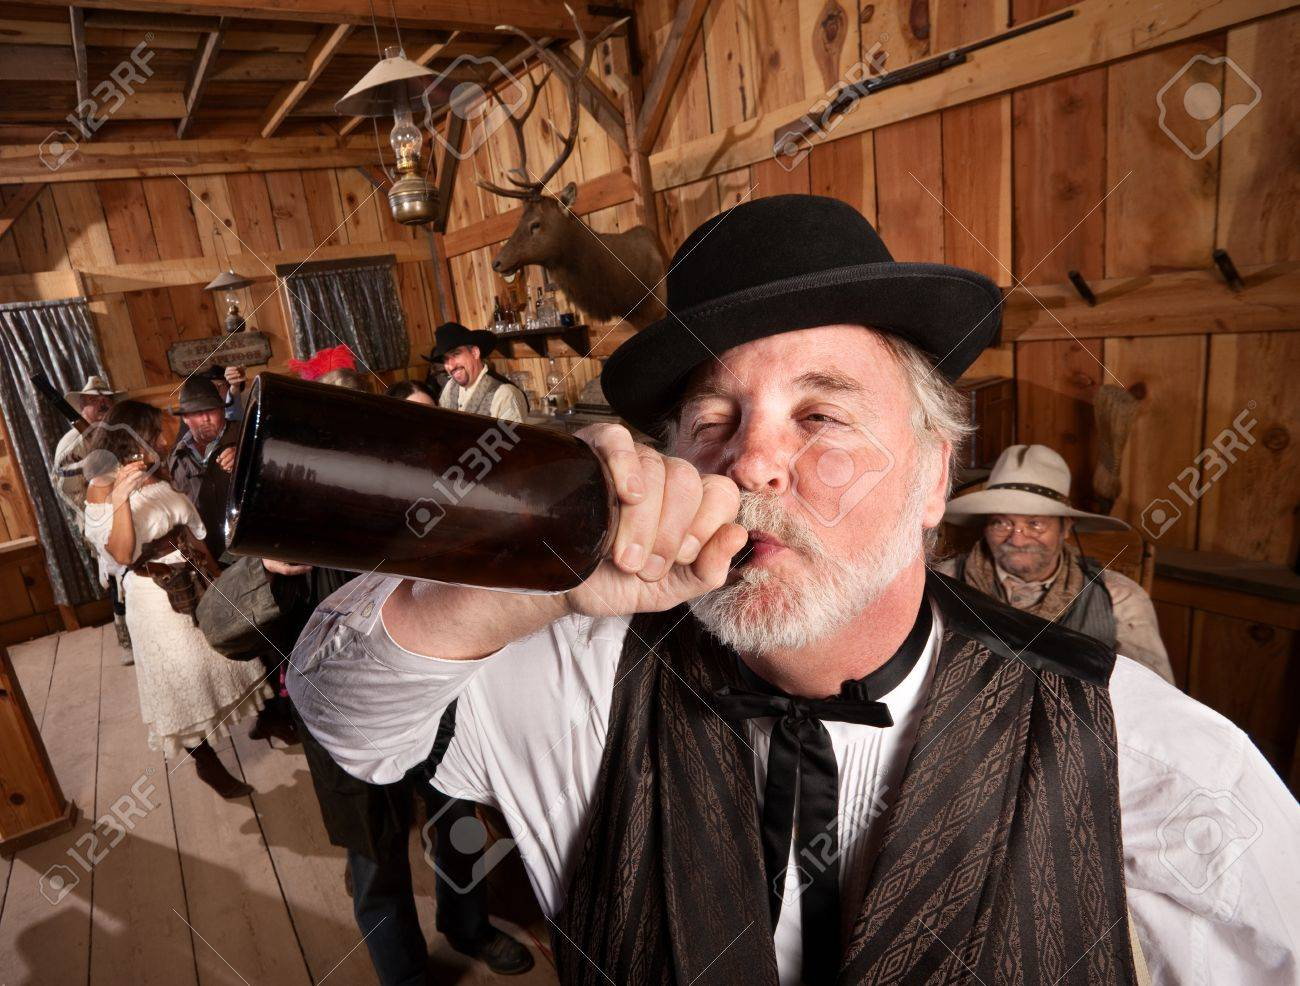 Drunken man chugs a bottle of alcohol in a saloon Stock Photo - 13889227